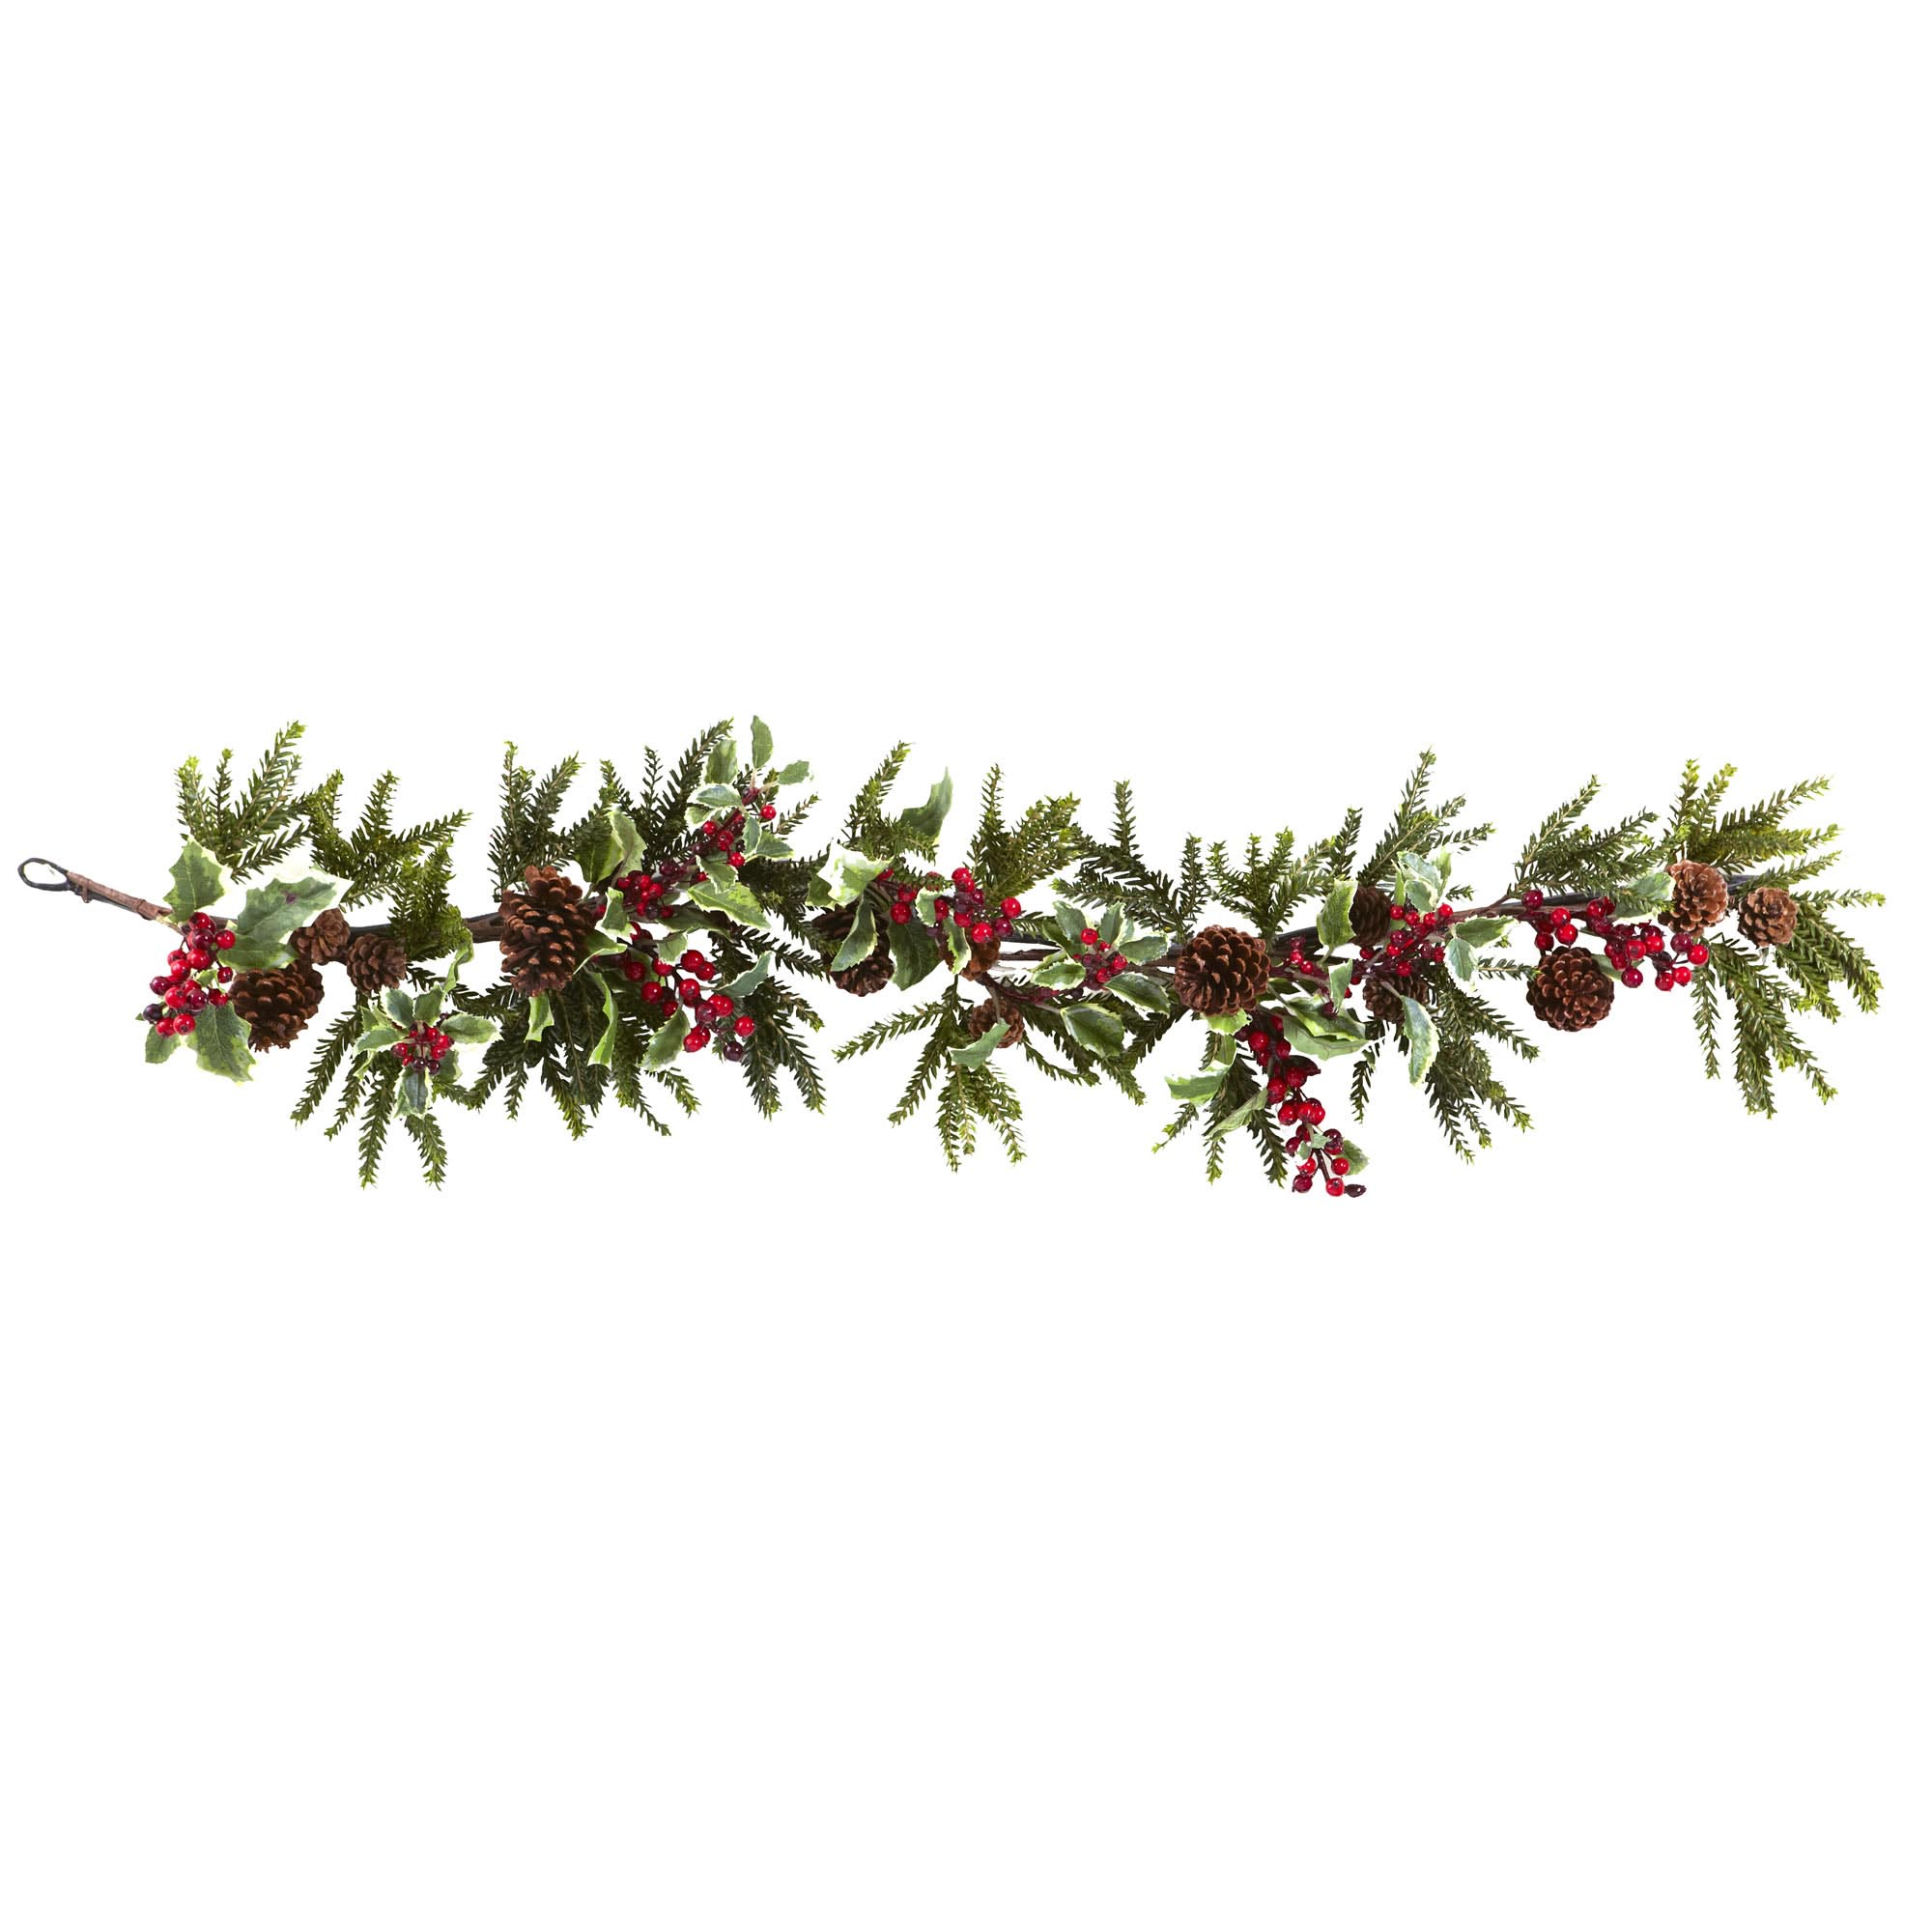 Free Evergreen Garland Cliparts, Download Free Clip Art.